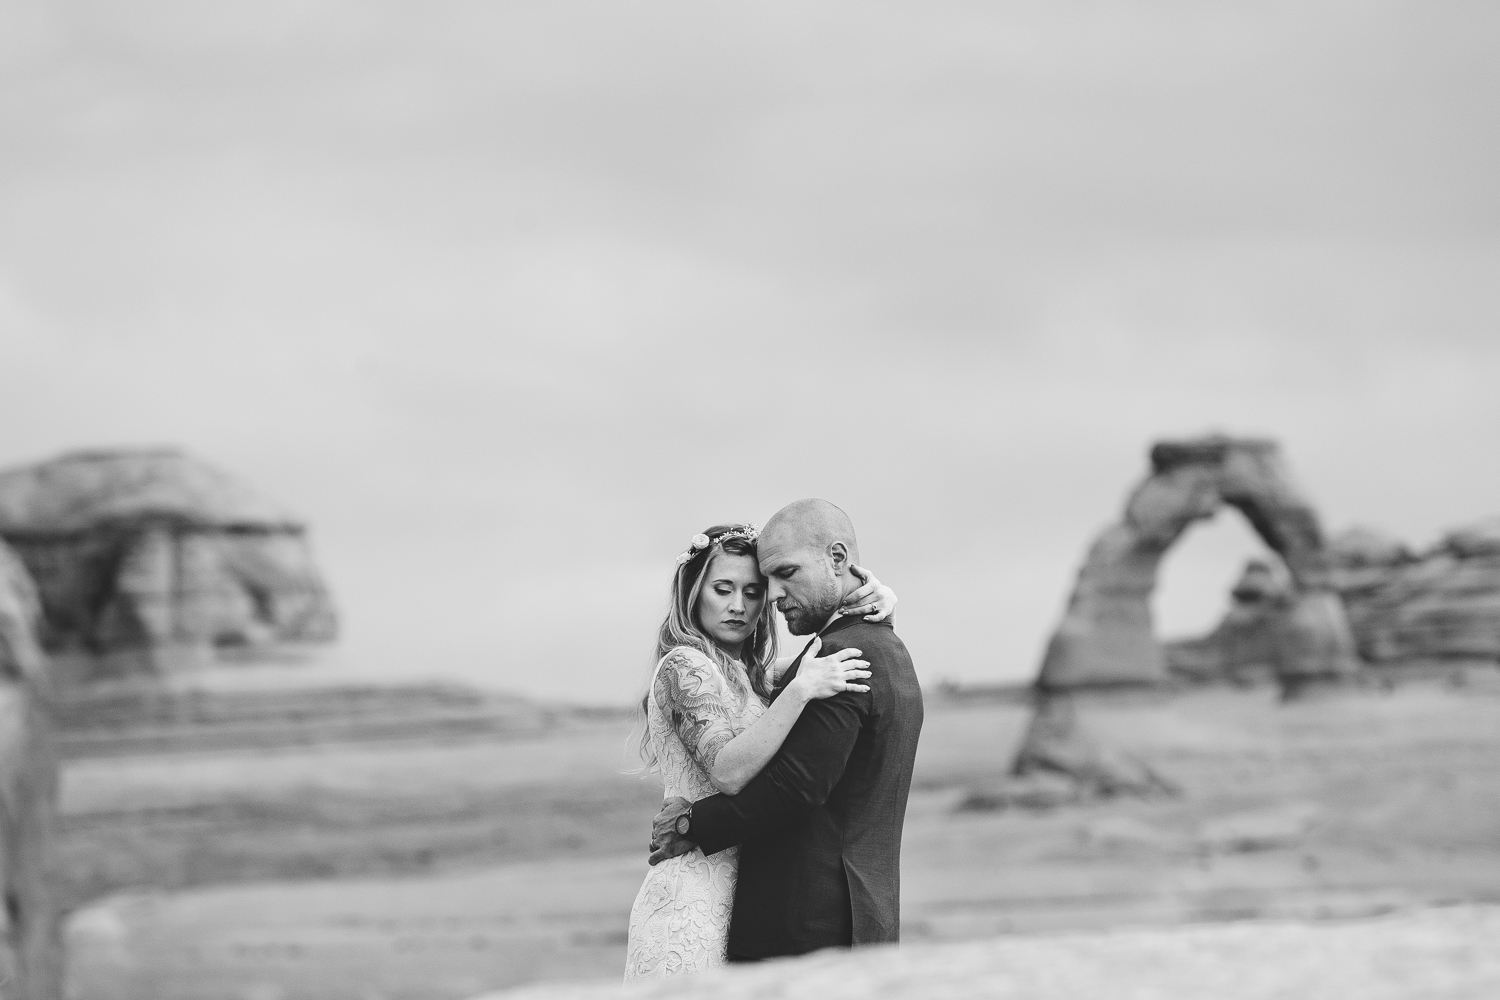 Delicate arch bride and groom wedding portrait black and white